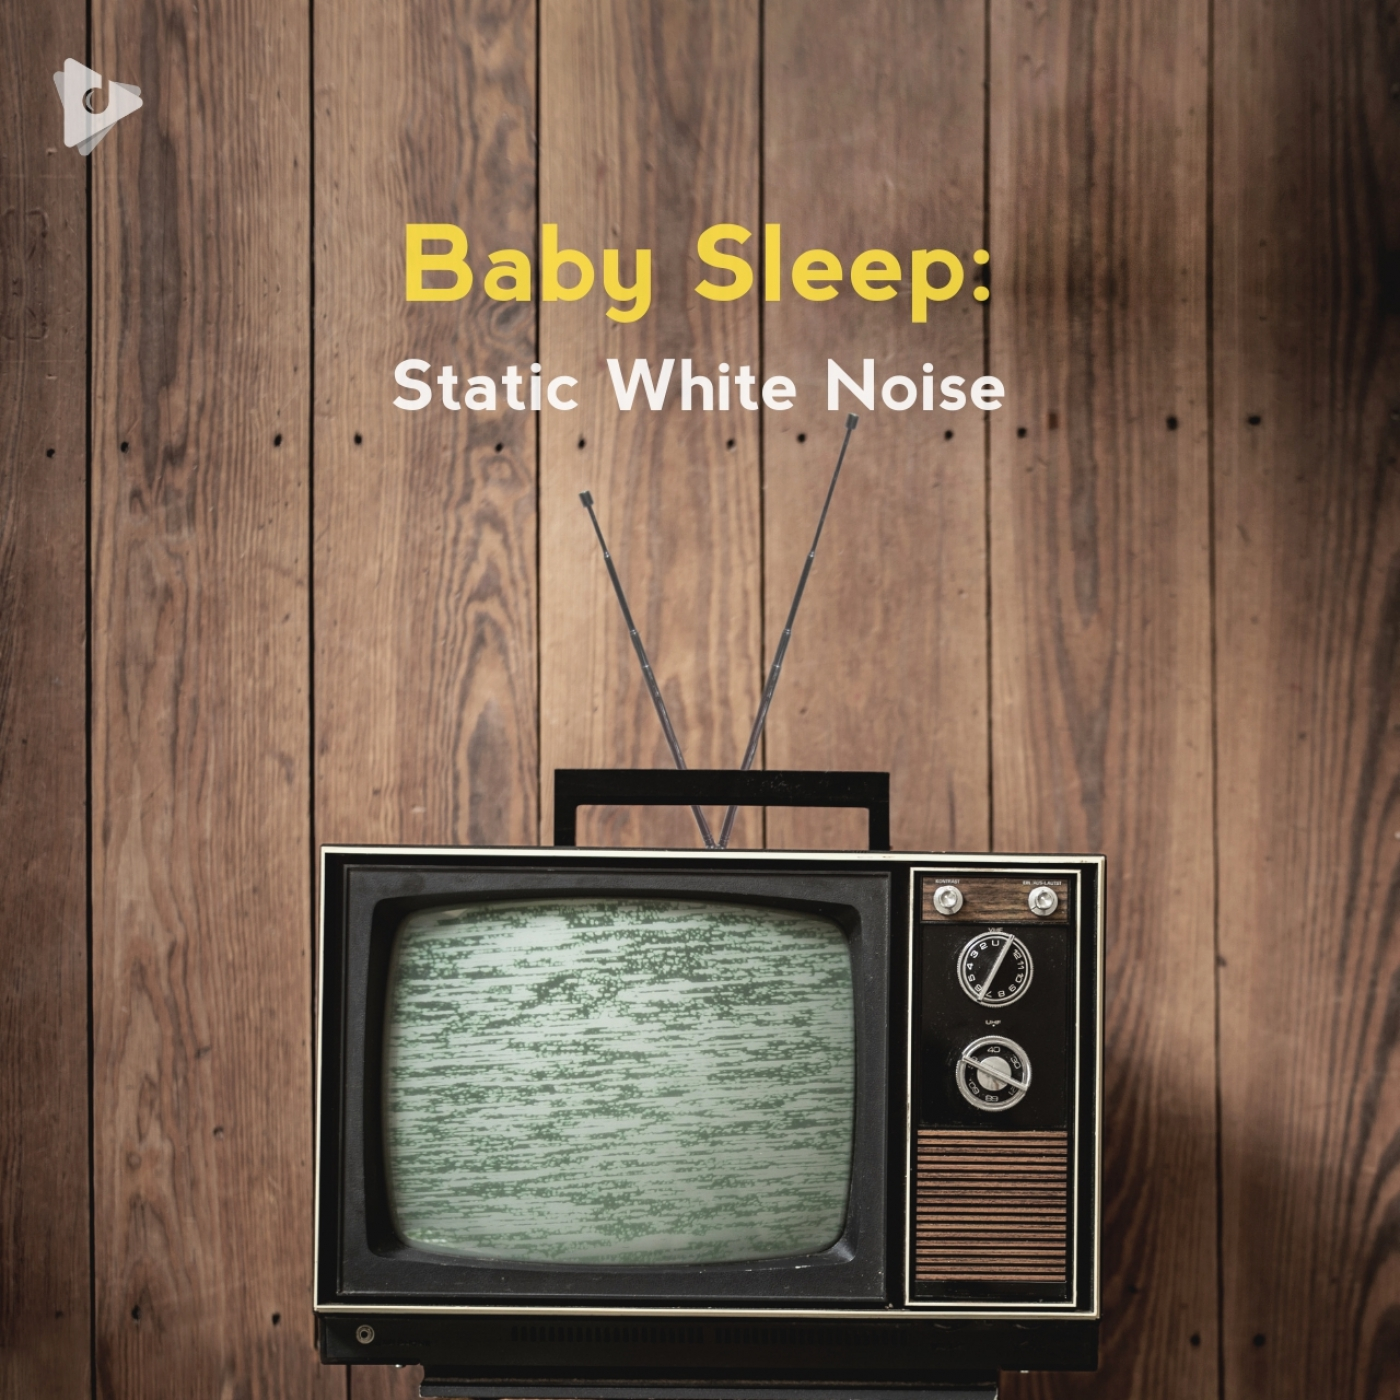 Baby Sleep: Static White Noise